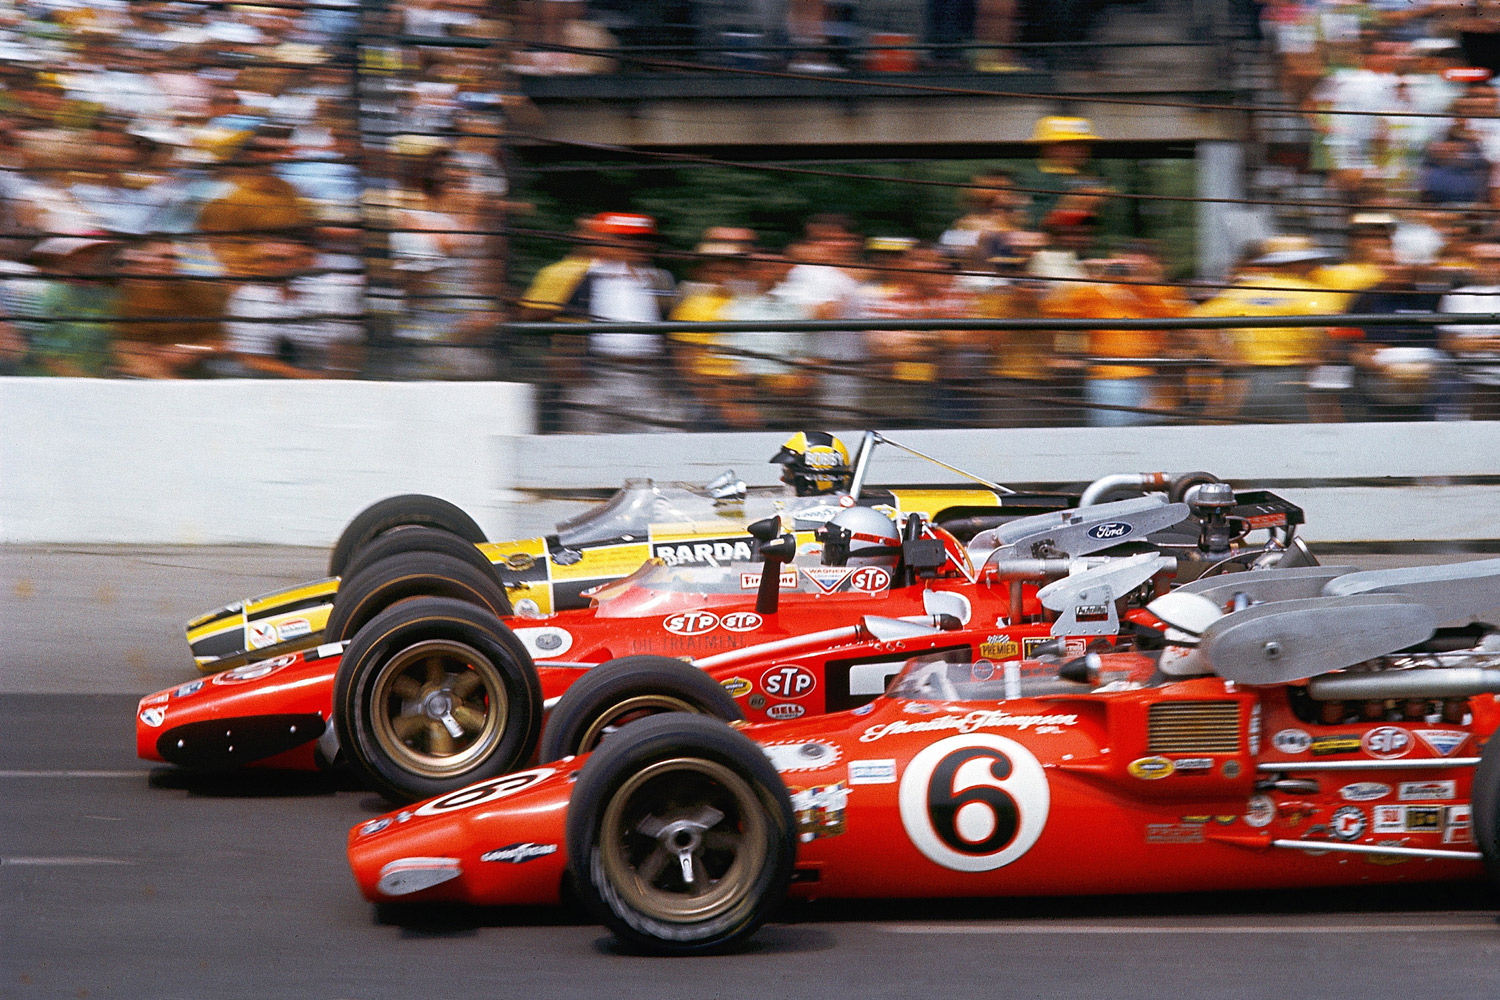 Although he was flanked by past winners Bobby Unser and A.J. Foyt (6) at the start of the race, Mario Andretti prevailed to take his first and only checkered flag.